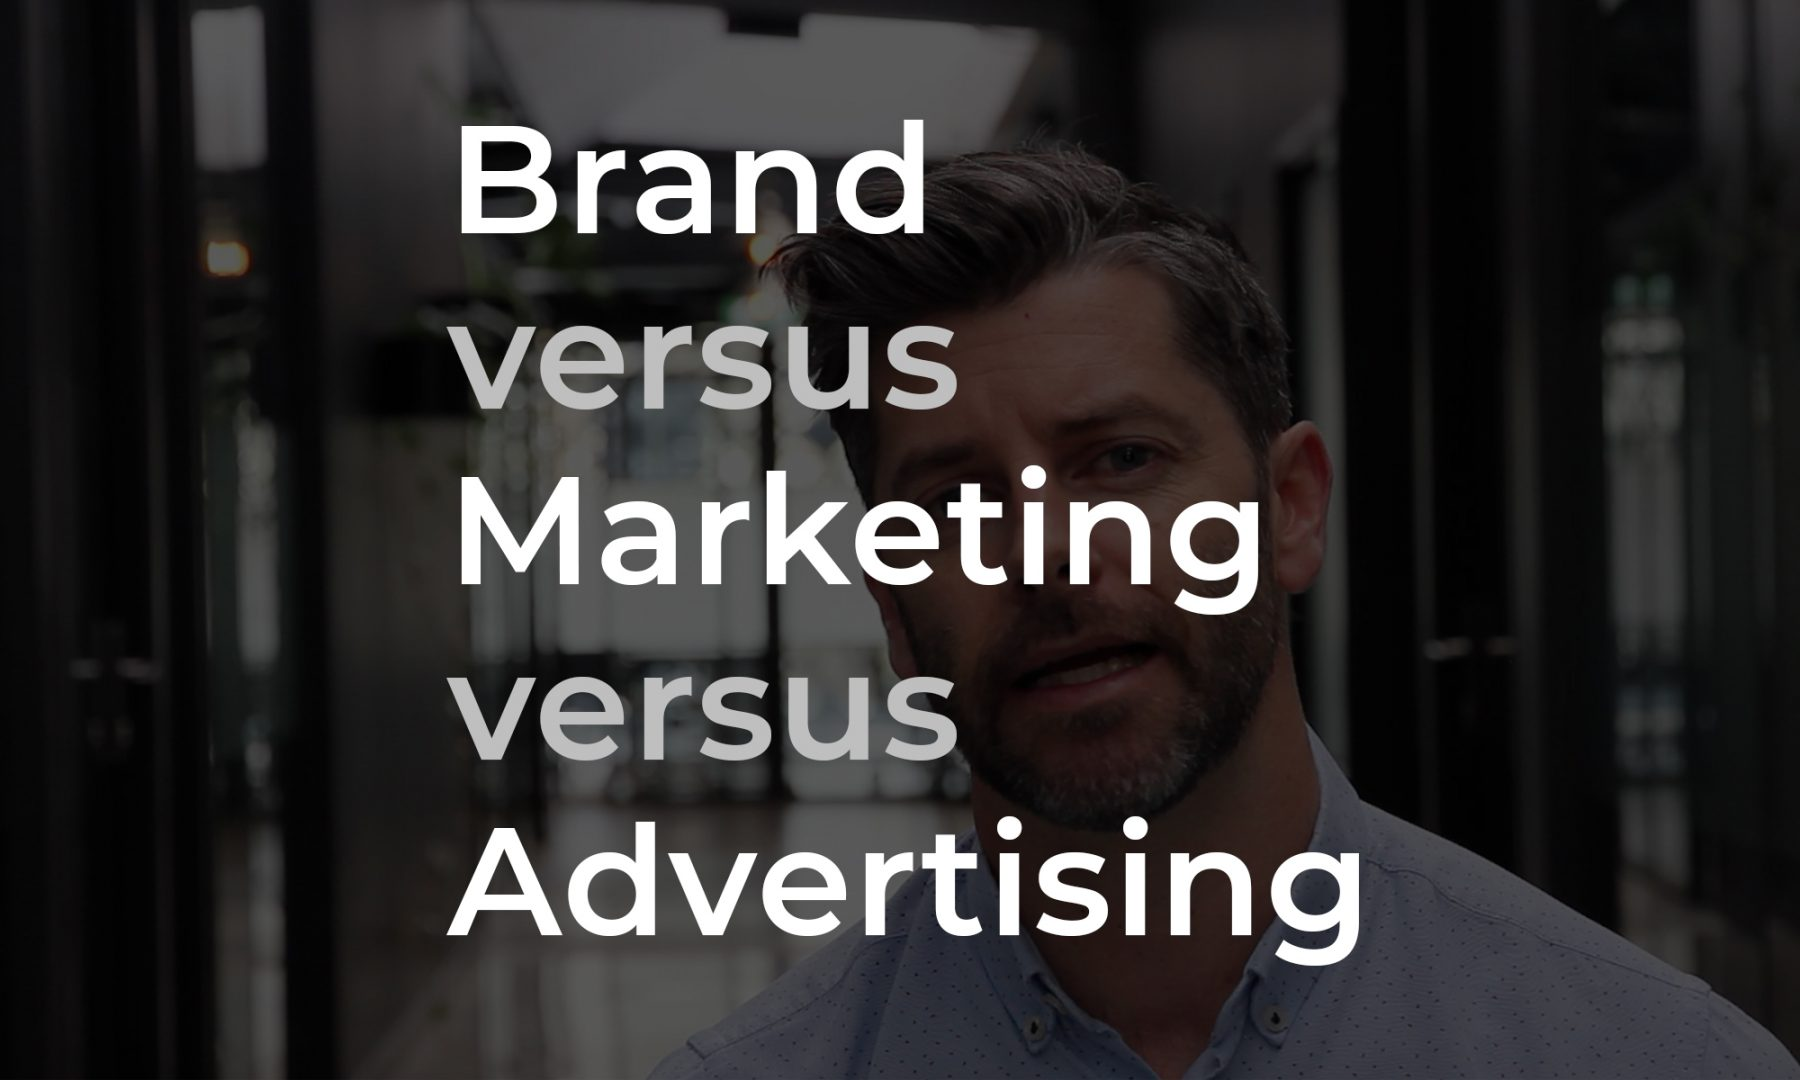 Brand versus Marketing versus Advertising